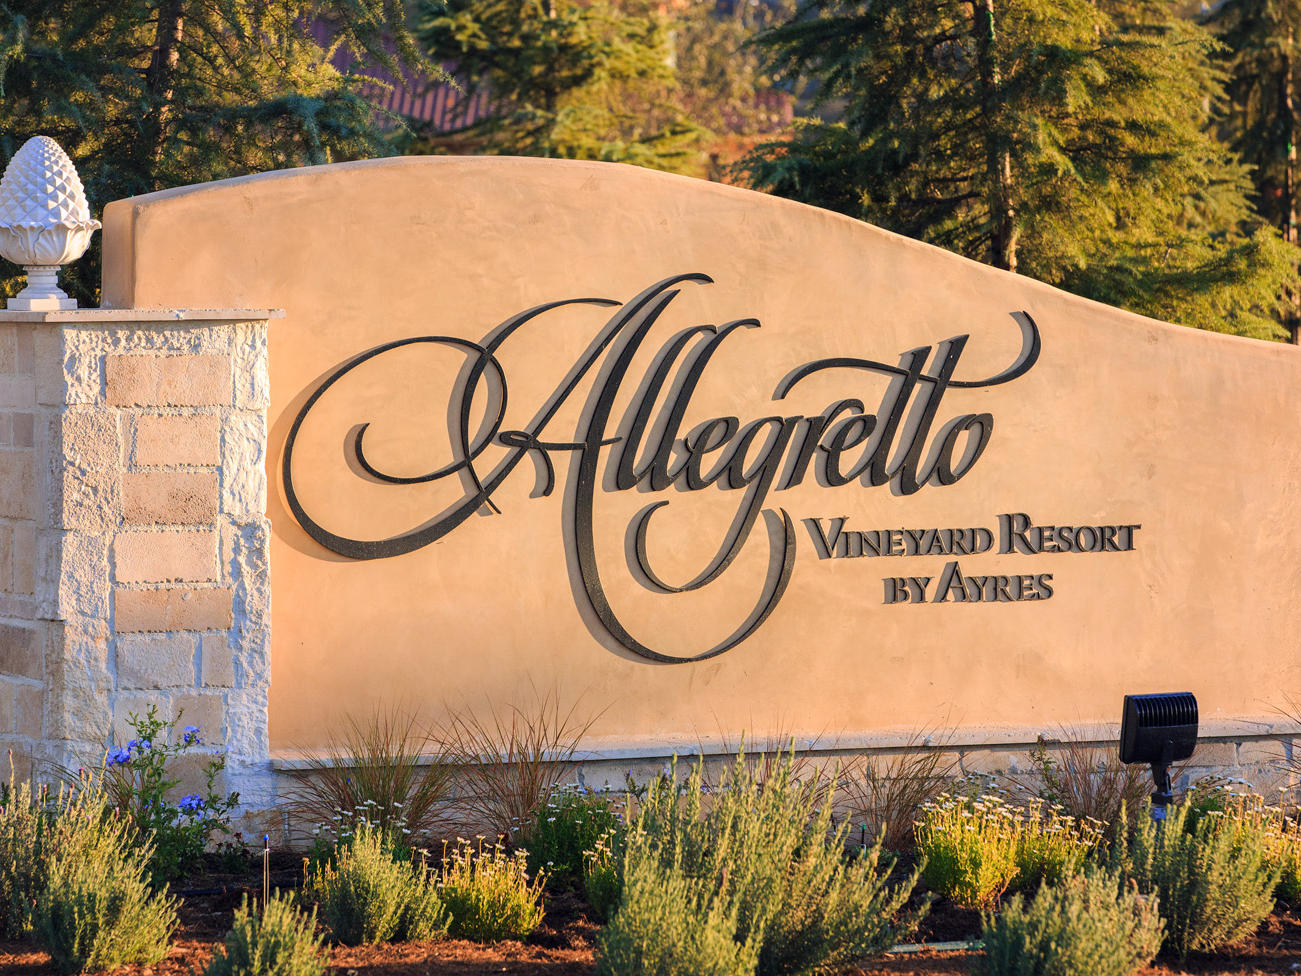 Allegretto Vineyard Resort sign